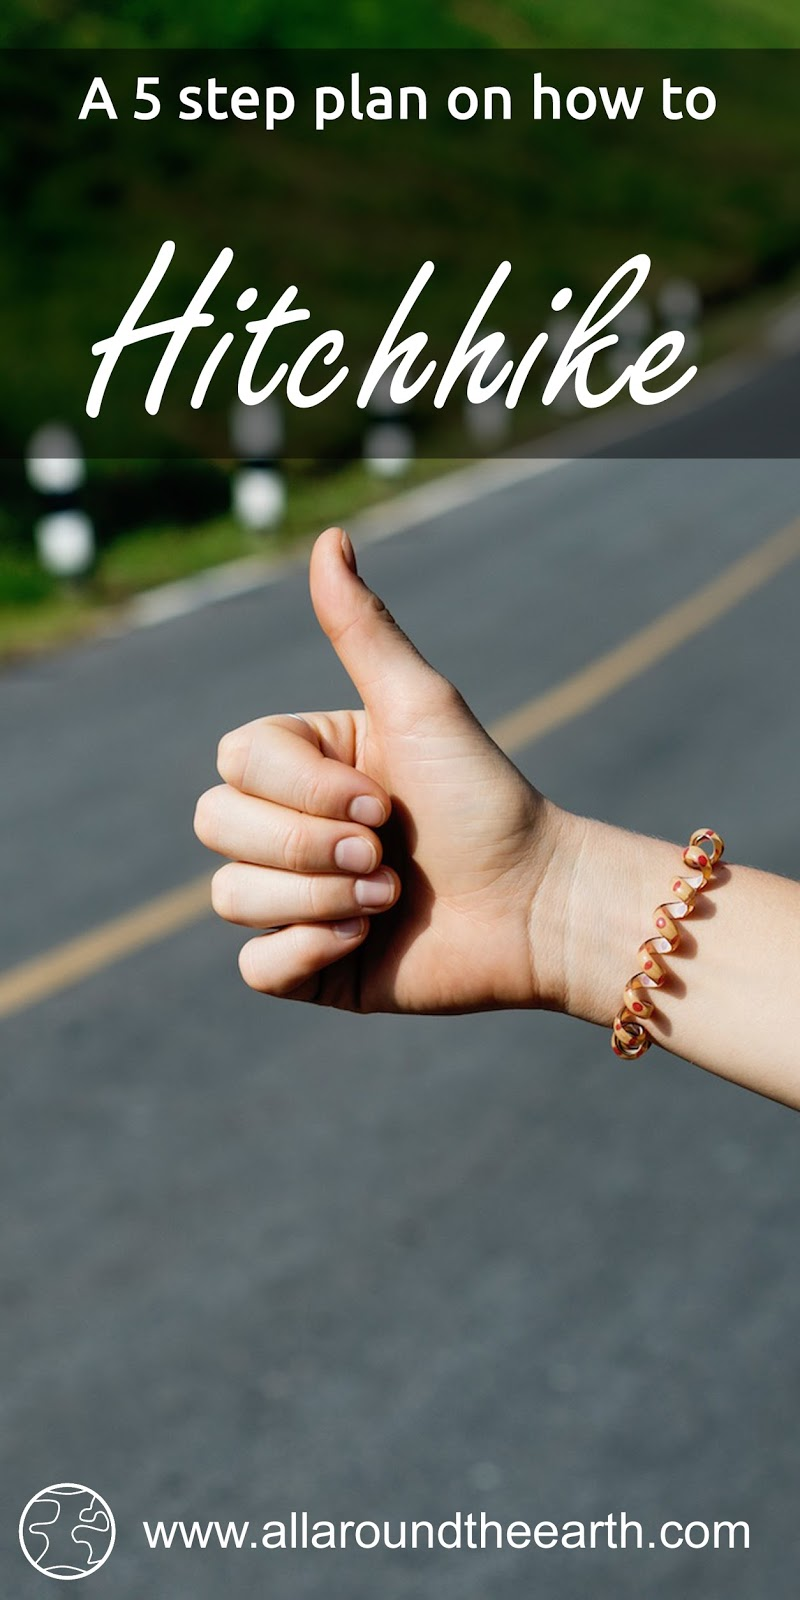 5 step guide on how to hitchhike